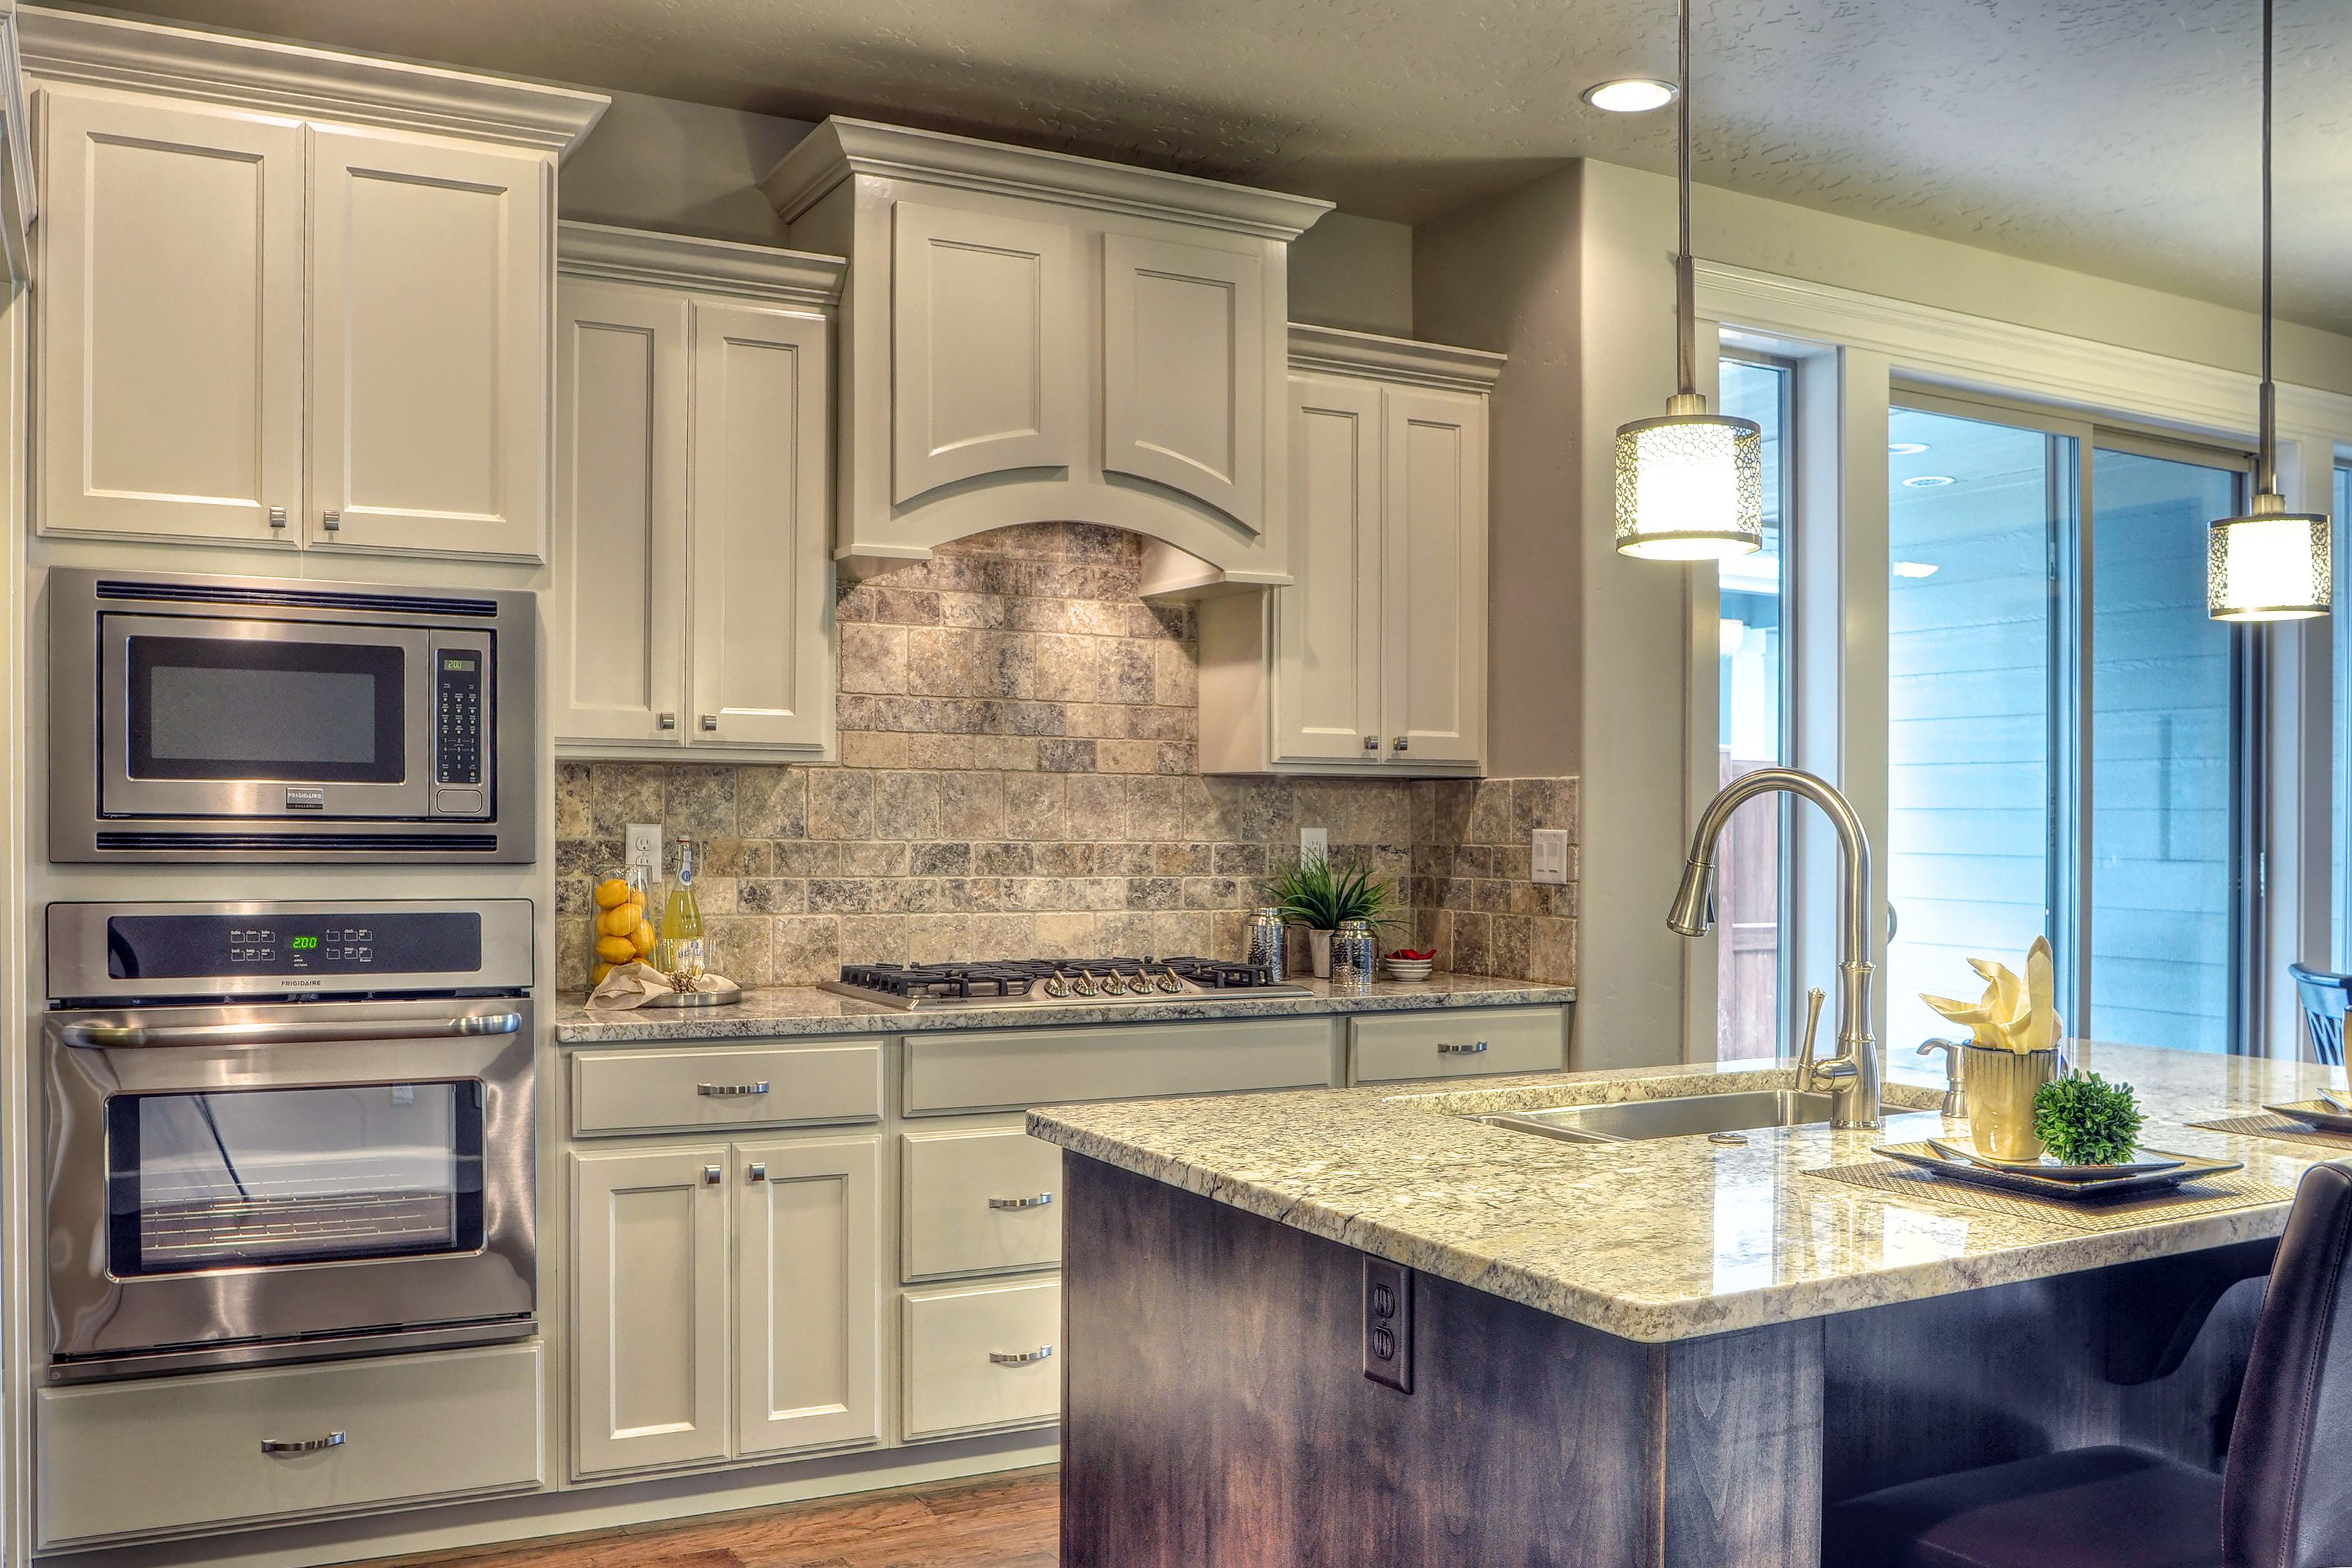 sherwin williams paint for kitchen cabinets blue backsplash tile snowbound painted make the